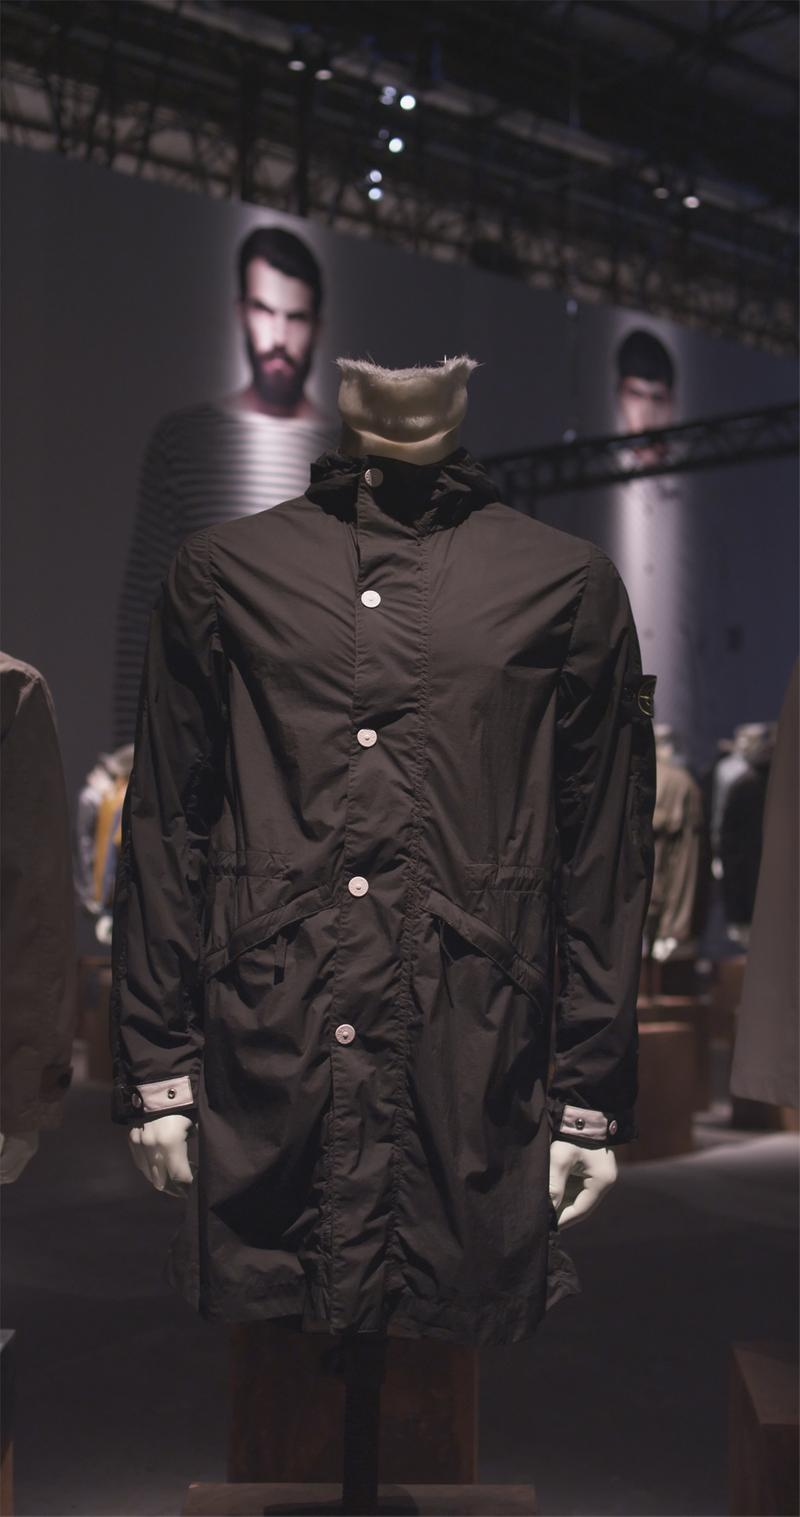 Long black jacket with white button closure and Stone Island badge on left arm displayed on mannequin bust